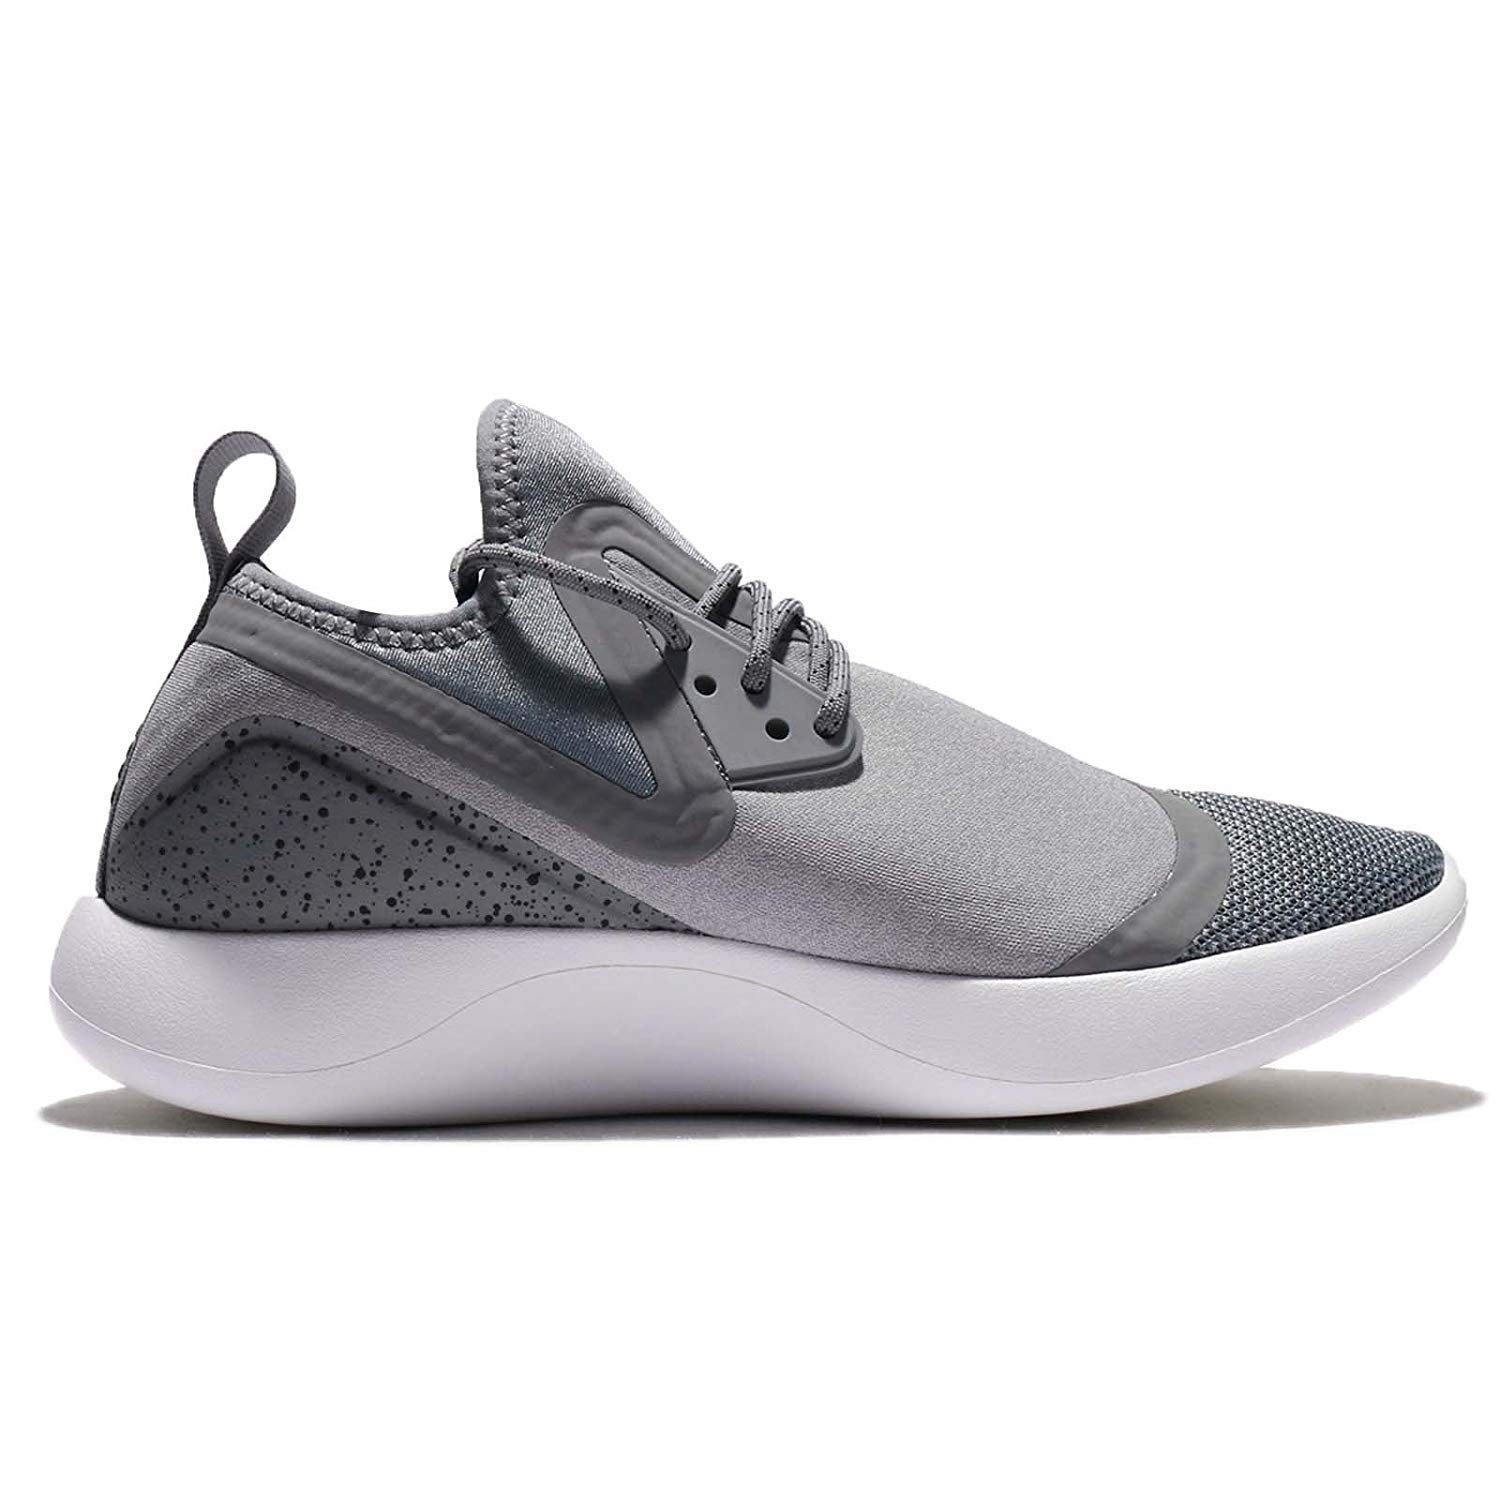 cc772d9110ac Shop Nike Womens Lunarcharge Essential Low Top Lace Up Running Sneaker -  Free Shipping Today - Overstock.com - 25753656